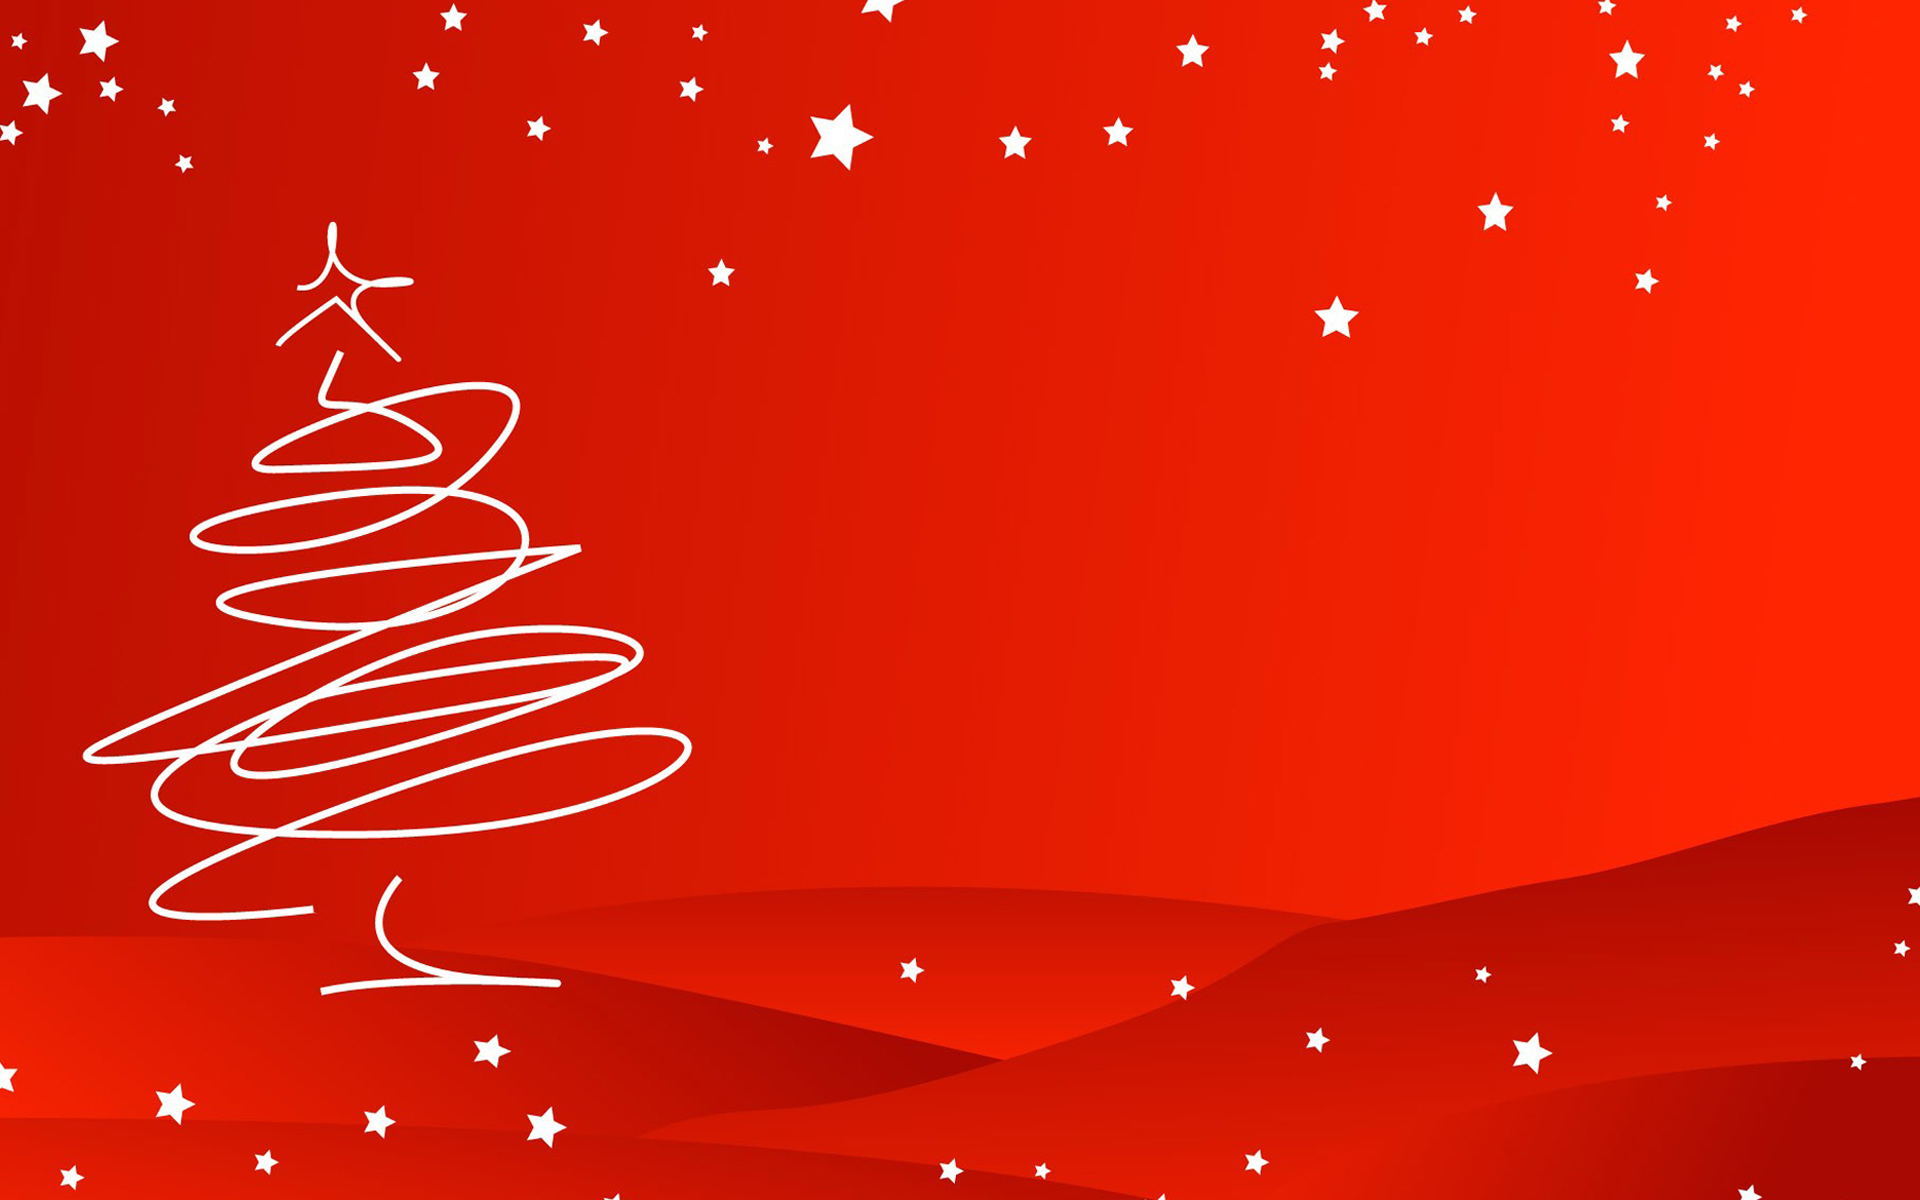 Christmas Background Vector Wallpapers9 1920x1200